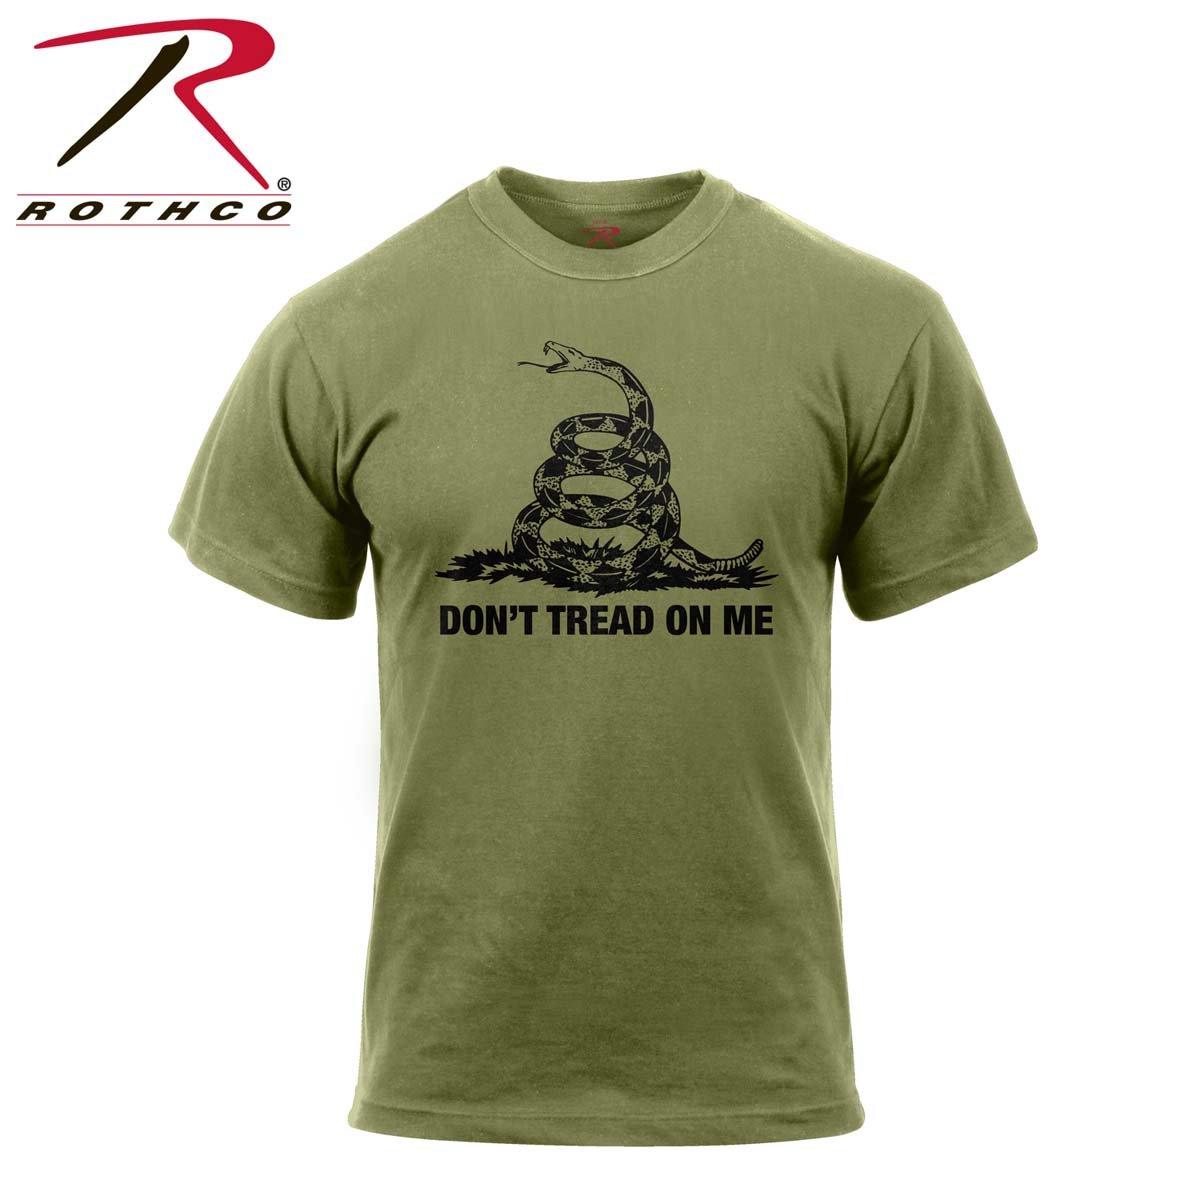 Rothco Don't Tread On Me T-Shirt RSR Group Inc 61062